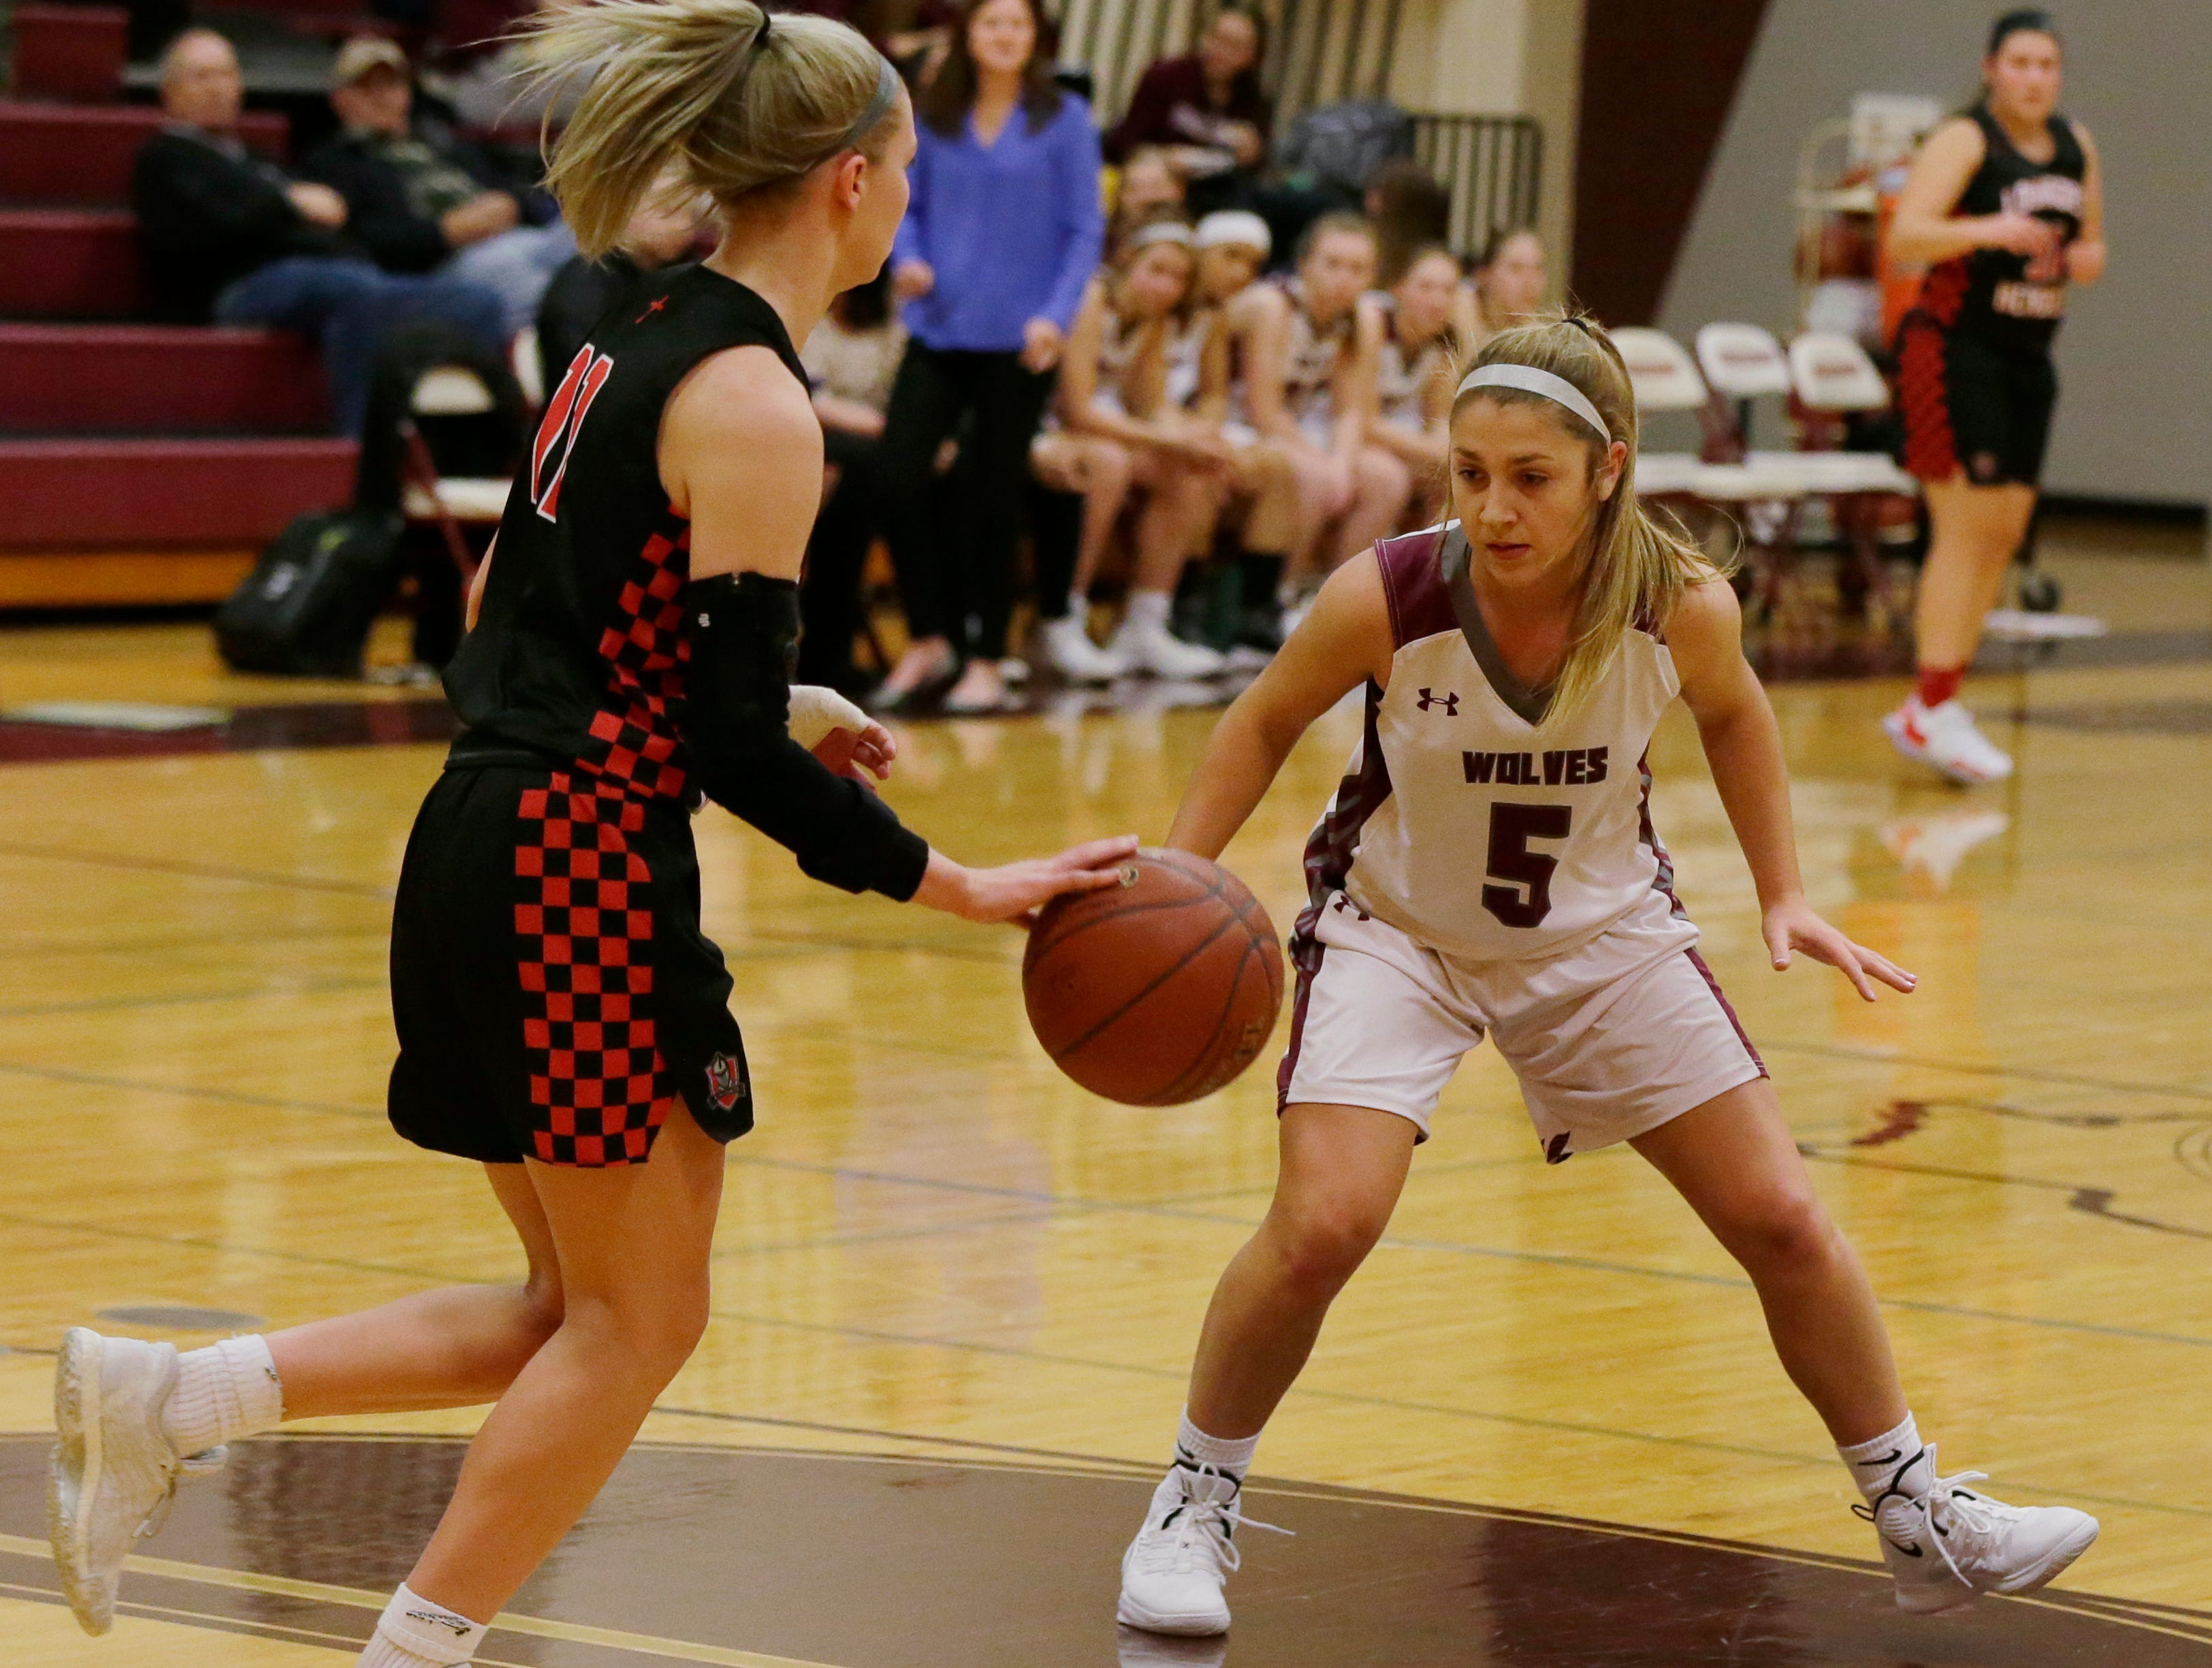 Winneconne's Kaitlyn Frierdich guards Lourdes Academy's Alexis Rolph during their game. Winneconne Wolves played Lourdes Academy Knights, Tuesday, Dec. 11, 2018. Winneconne won 56 - 44.